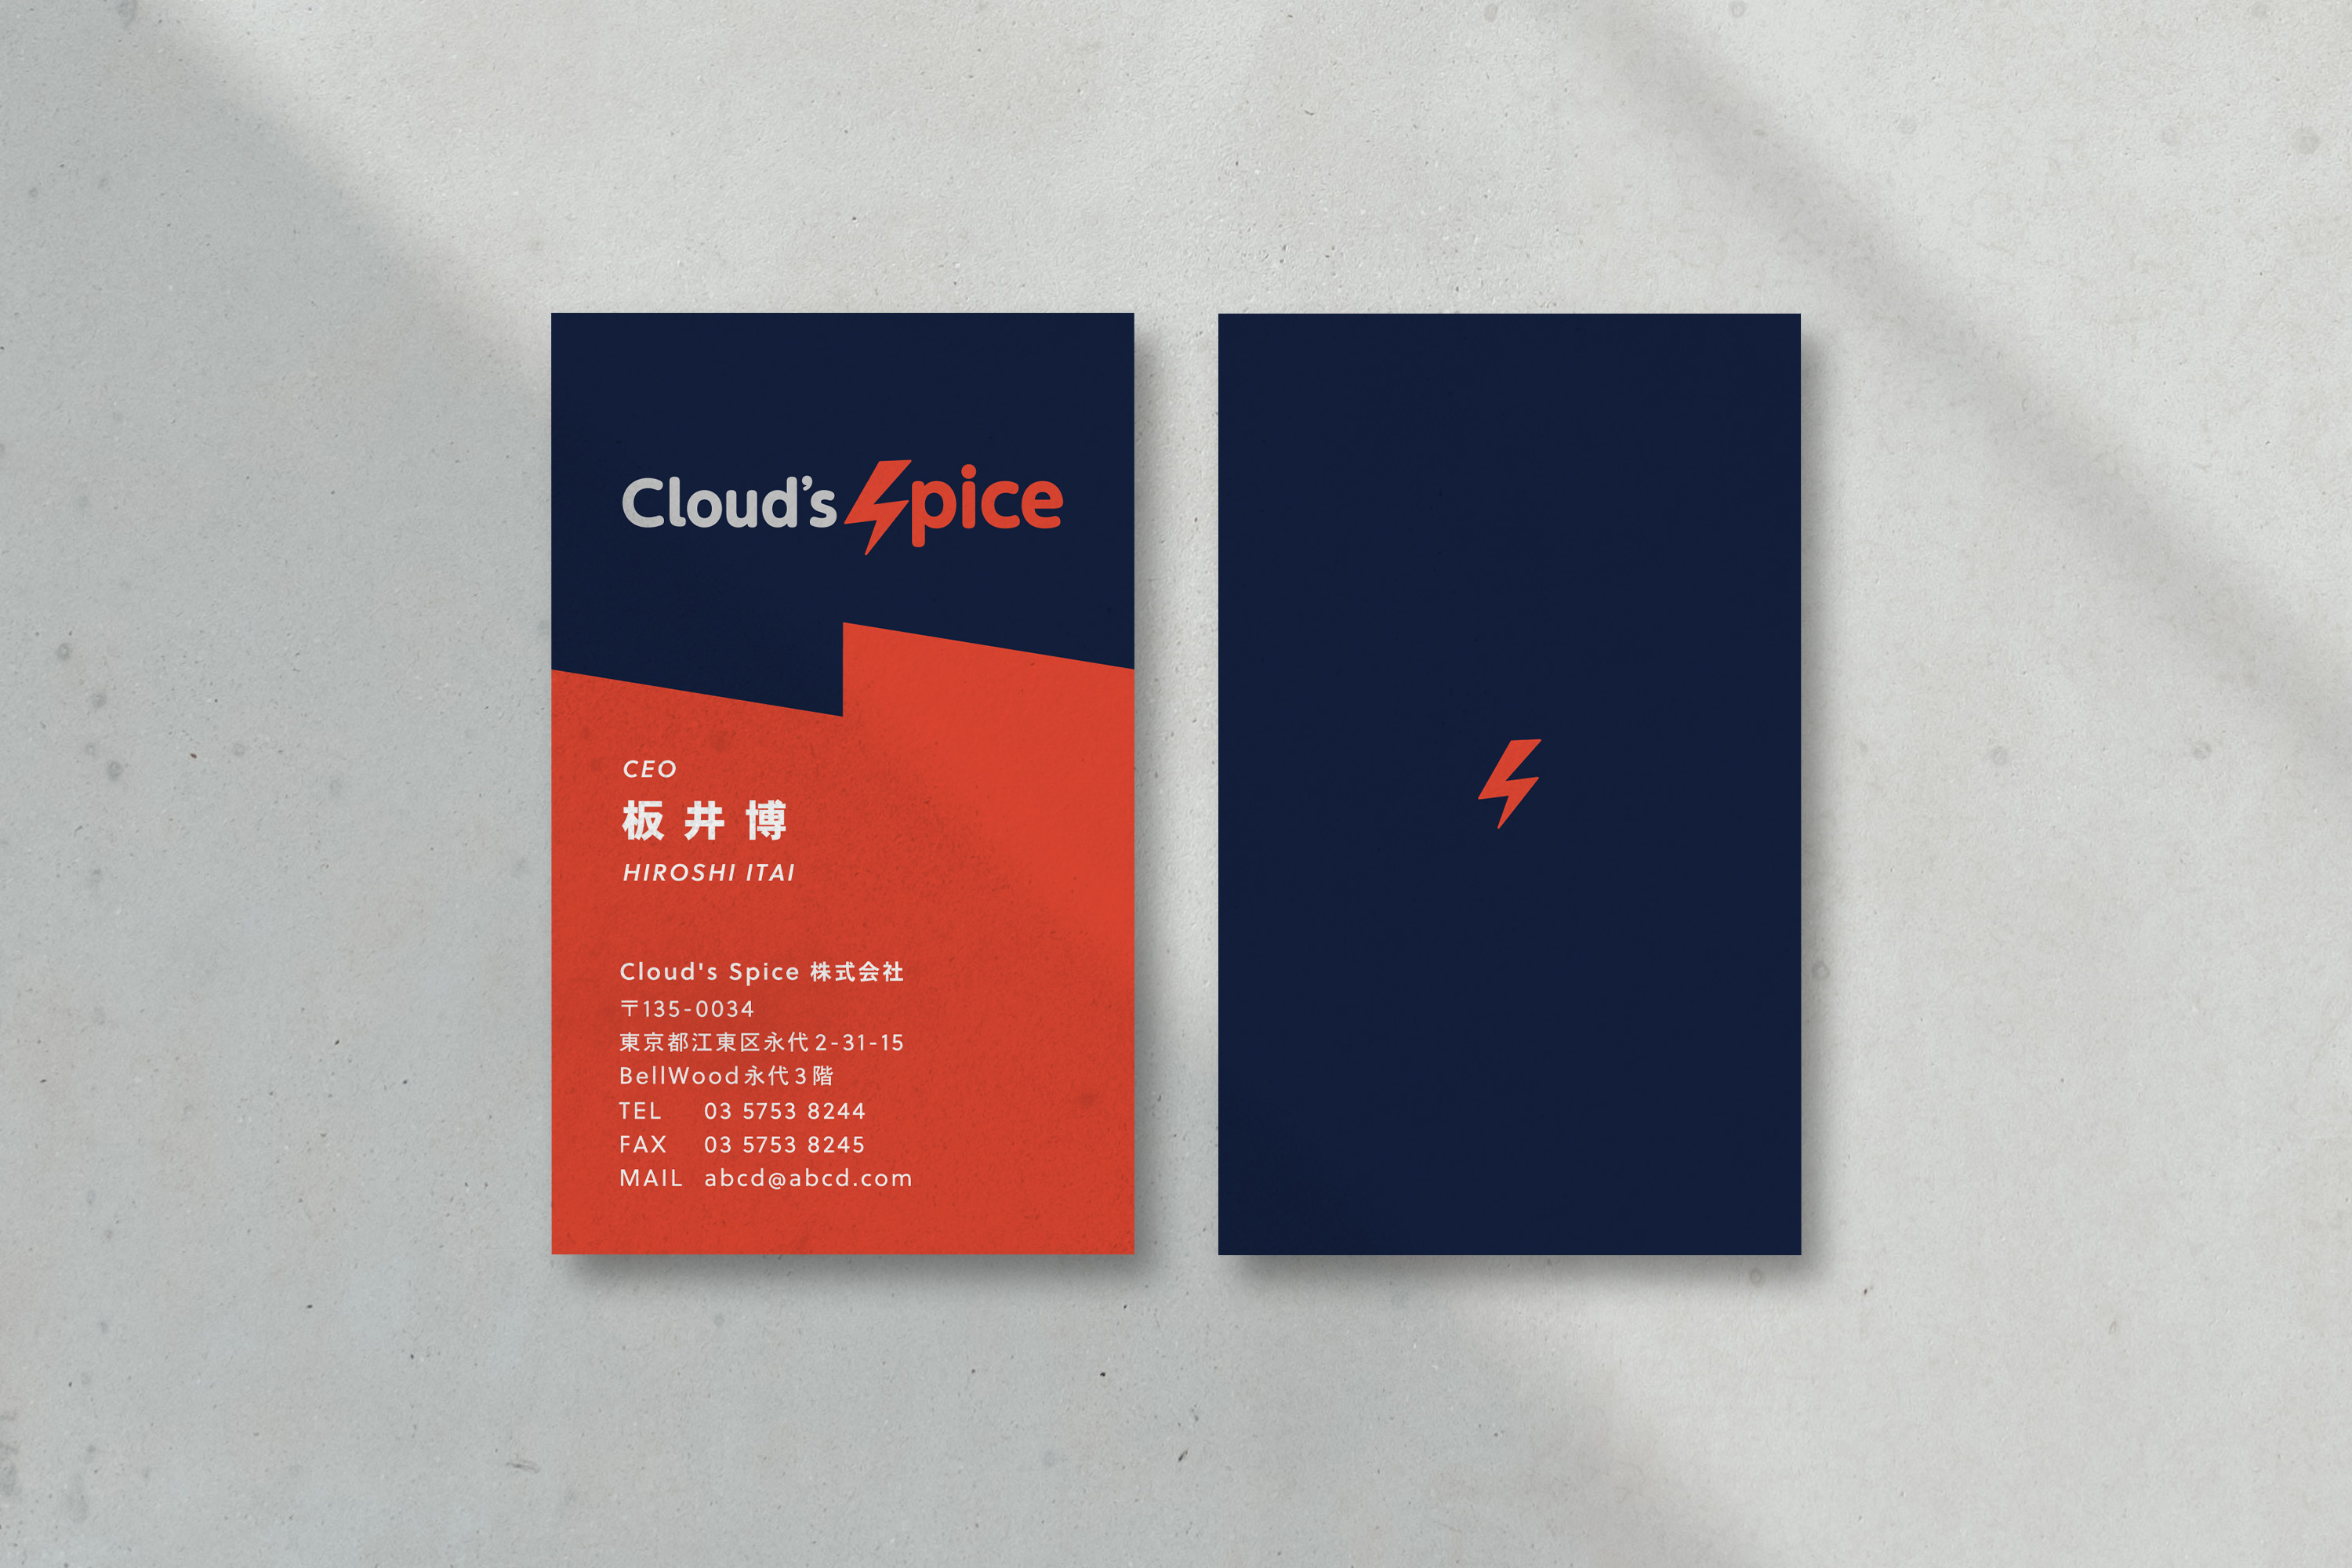 Cloud's Spice